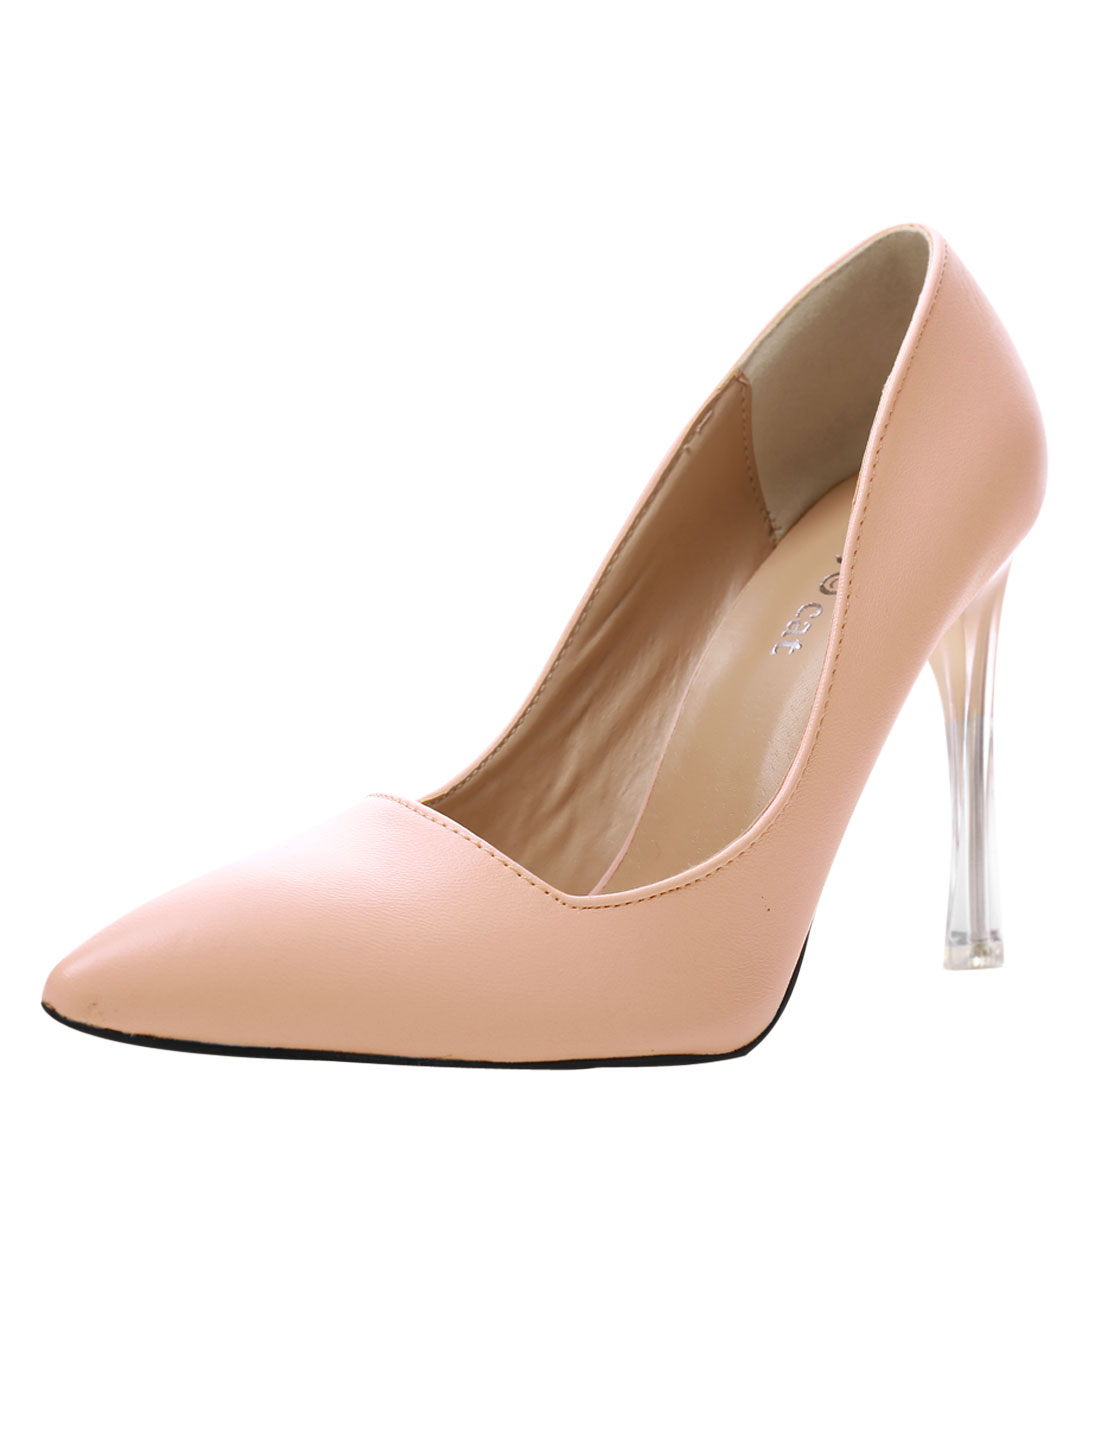 Woman Pointed Toe Translucent Stiletto Heel Pumps Nude Pink US 8